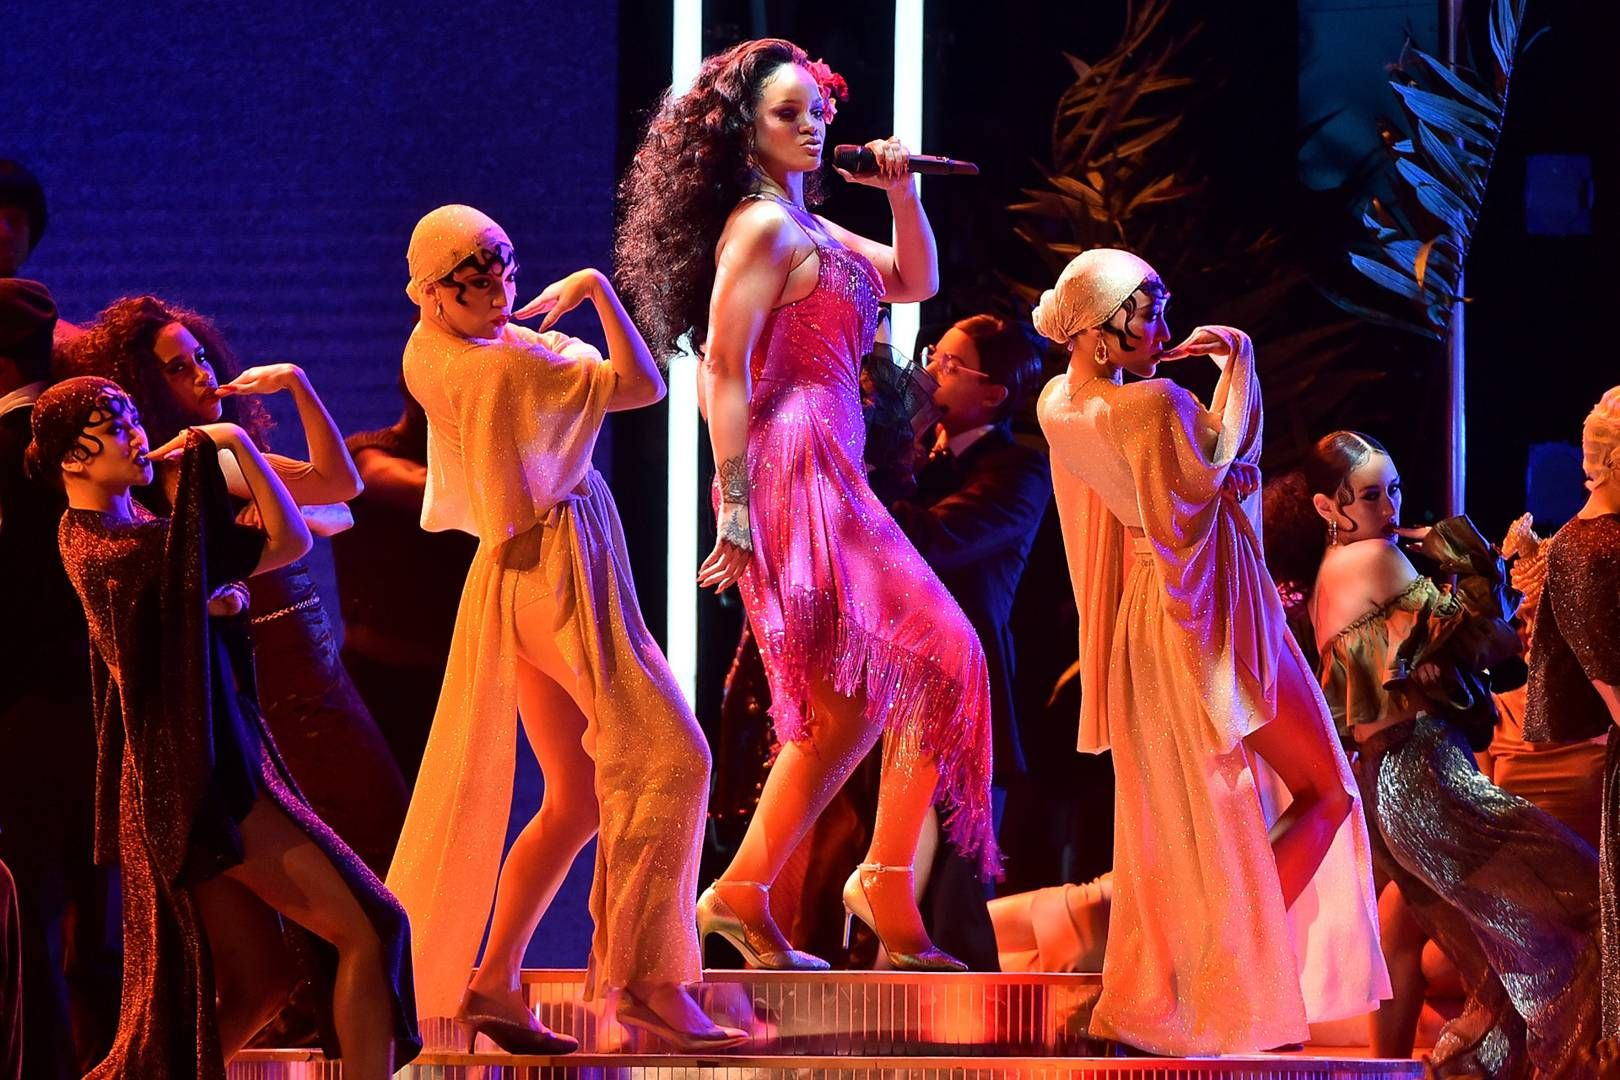 Watch all the best performances from the 2018 GRAMMYs